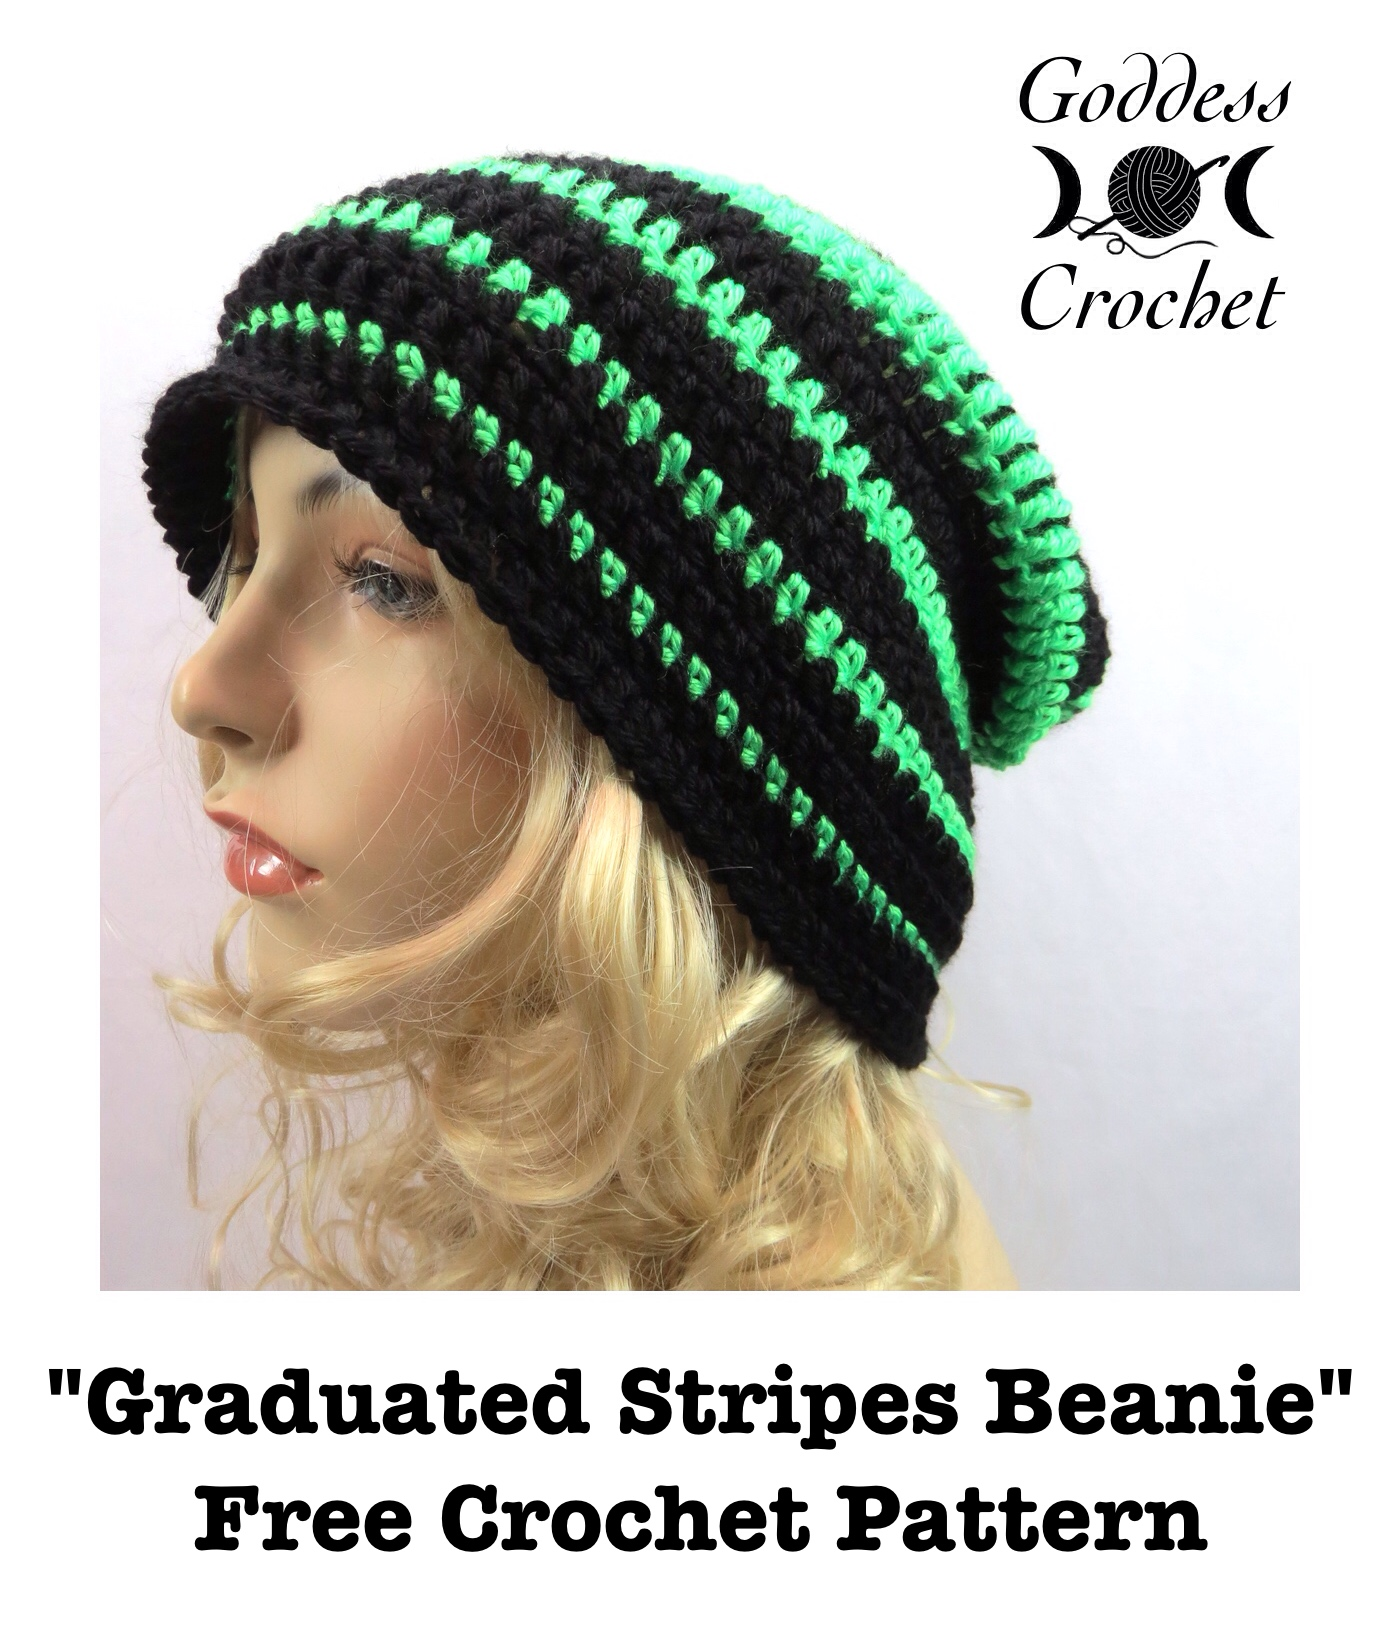 Daisies, Beanie and Beanie pattern on Pinterest